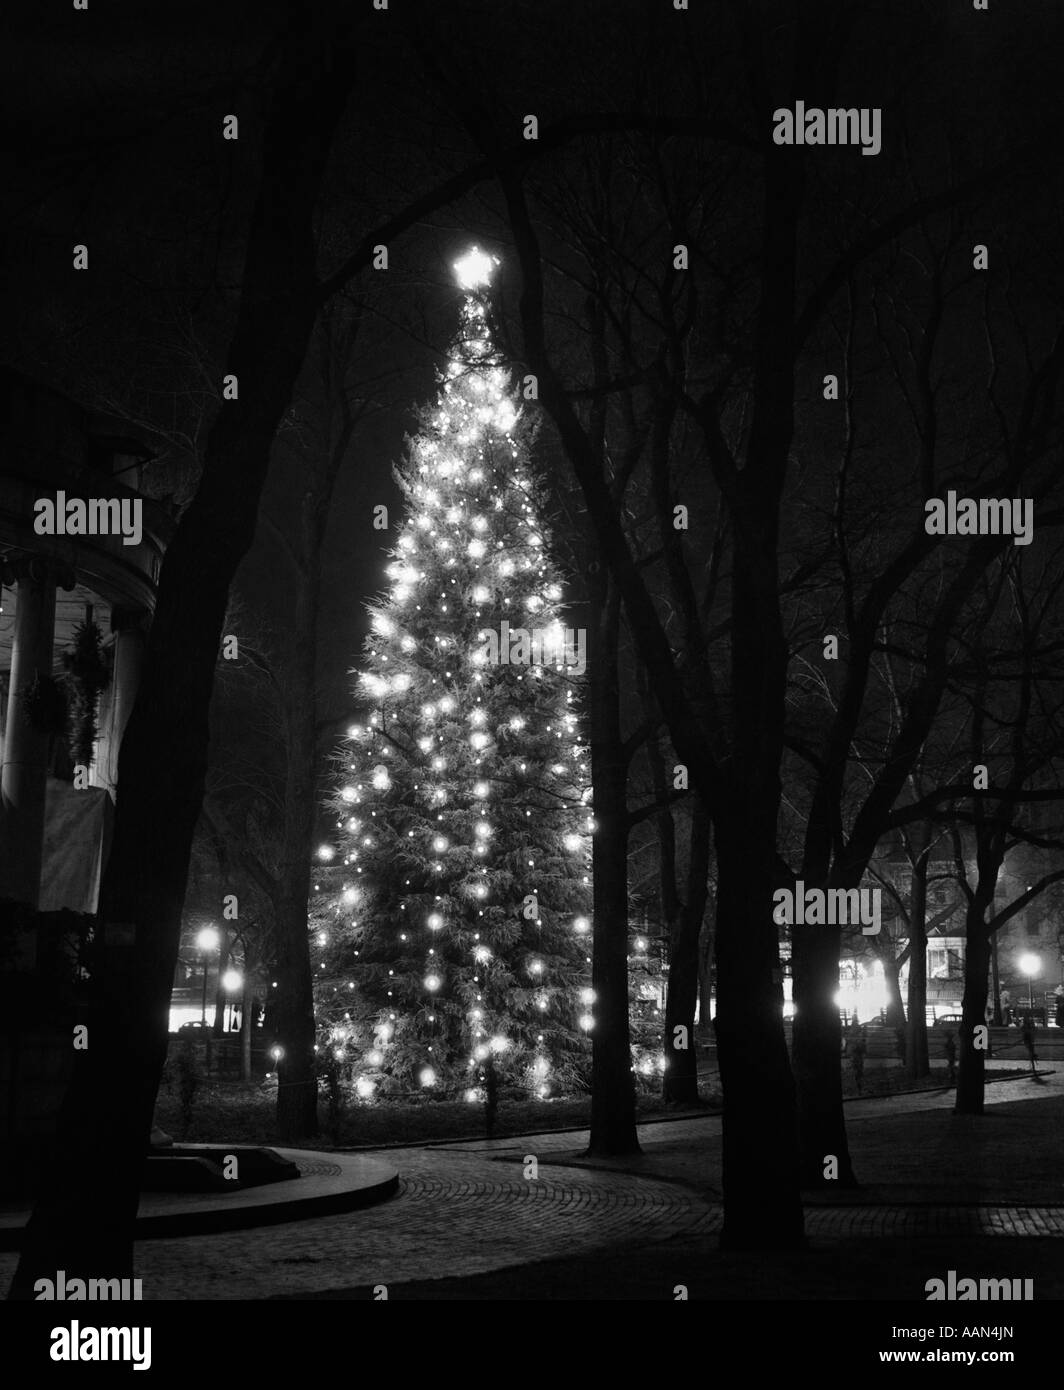 1950s TALL CHRISTMAS TREE LIT UP IN MIDDLE OF TOWN SQUARE - Stock Image